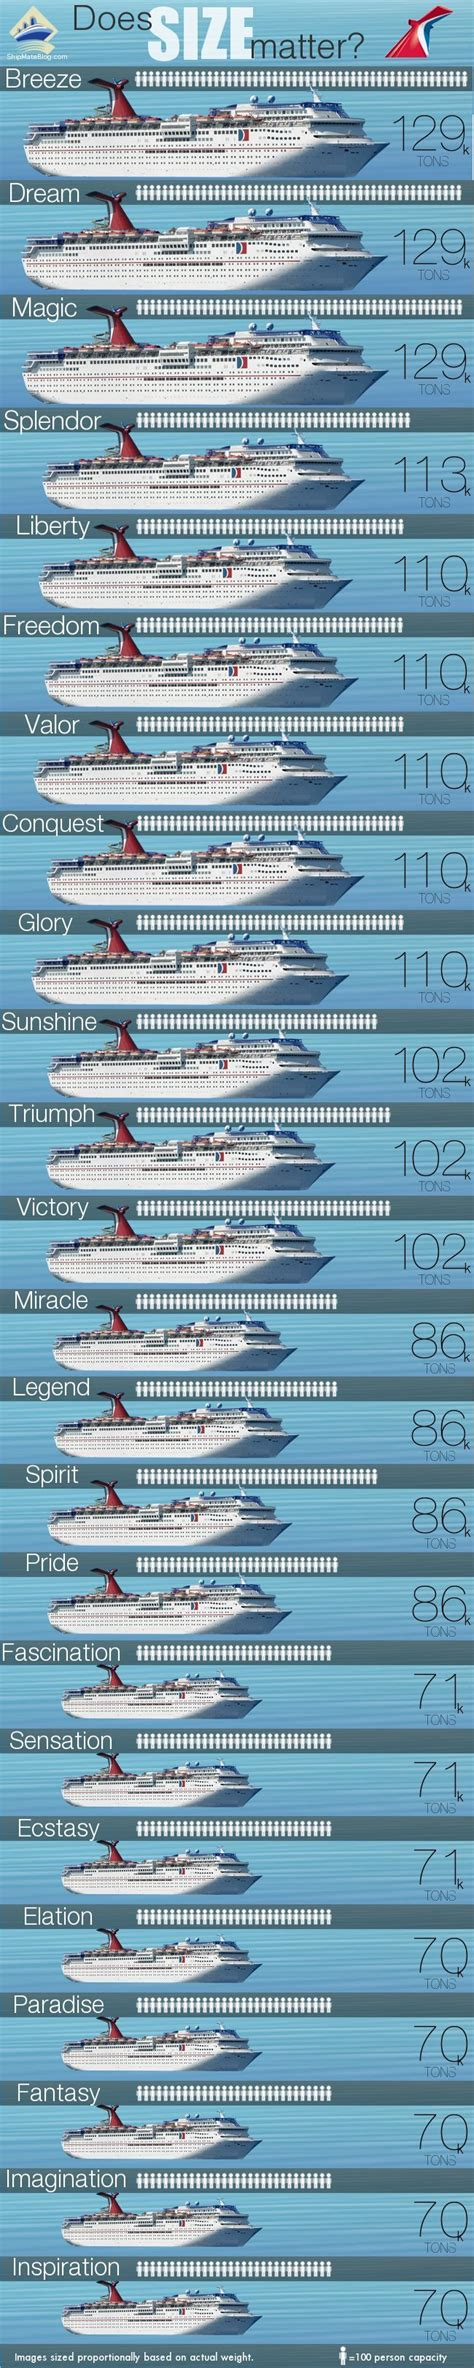 boat size for ocean travel does size matter carnival ship size comparison infographic